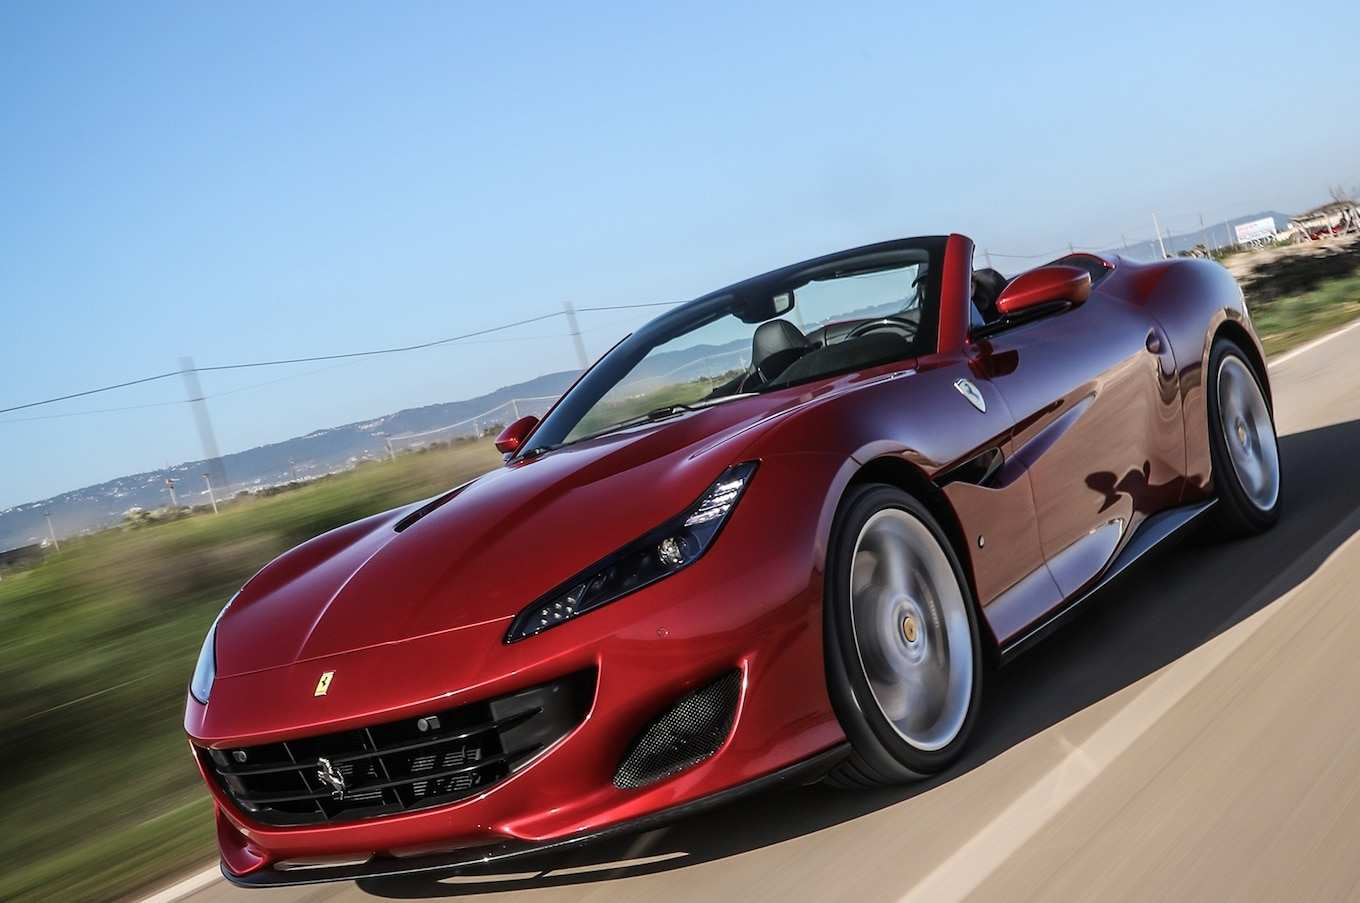 12 Gallery of 2019 Ferrari Charger Price with 2019 Ferrari Charger